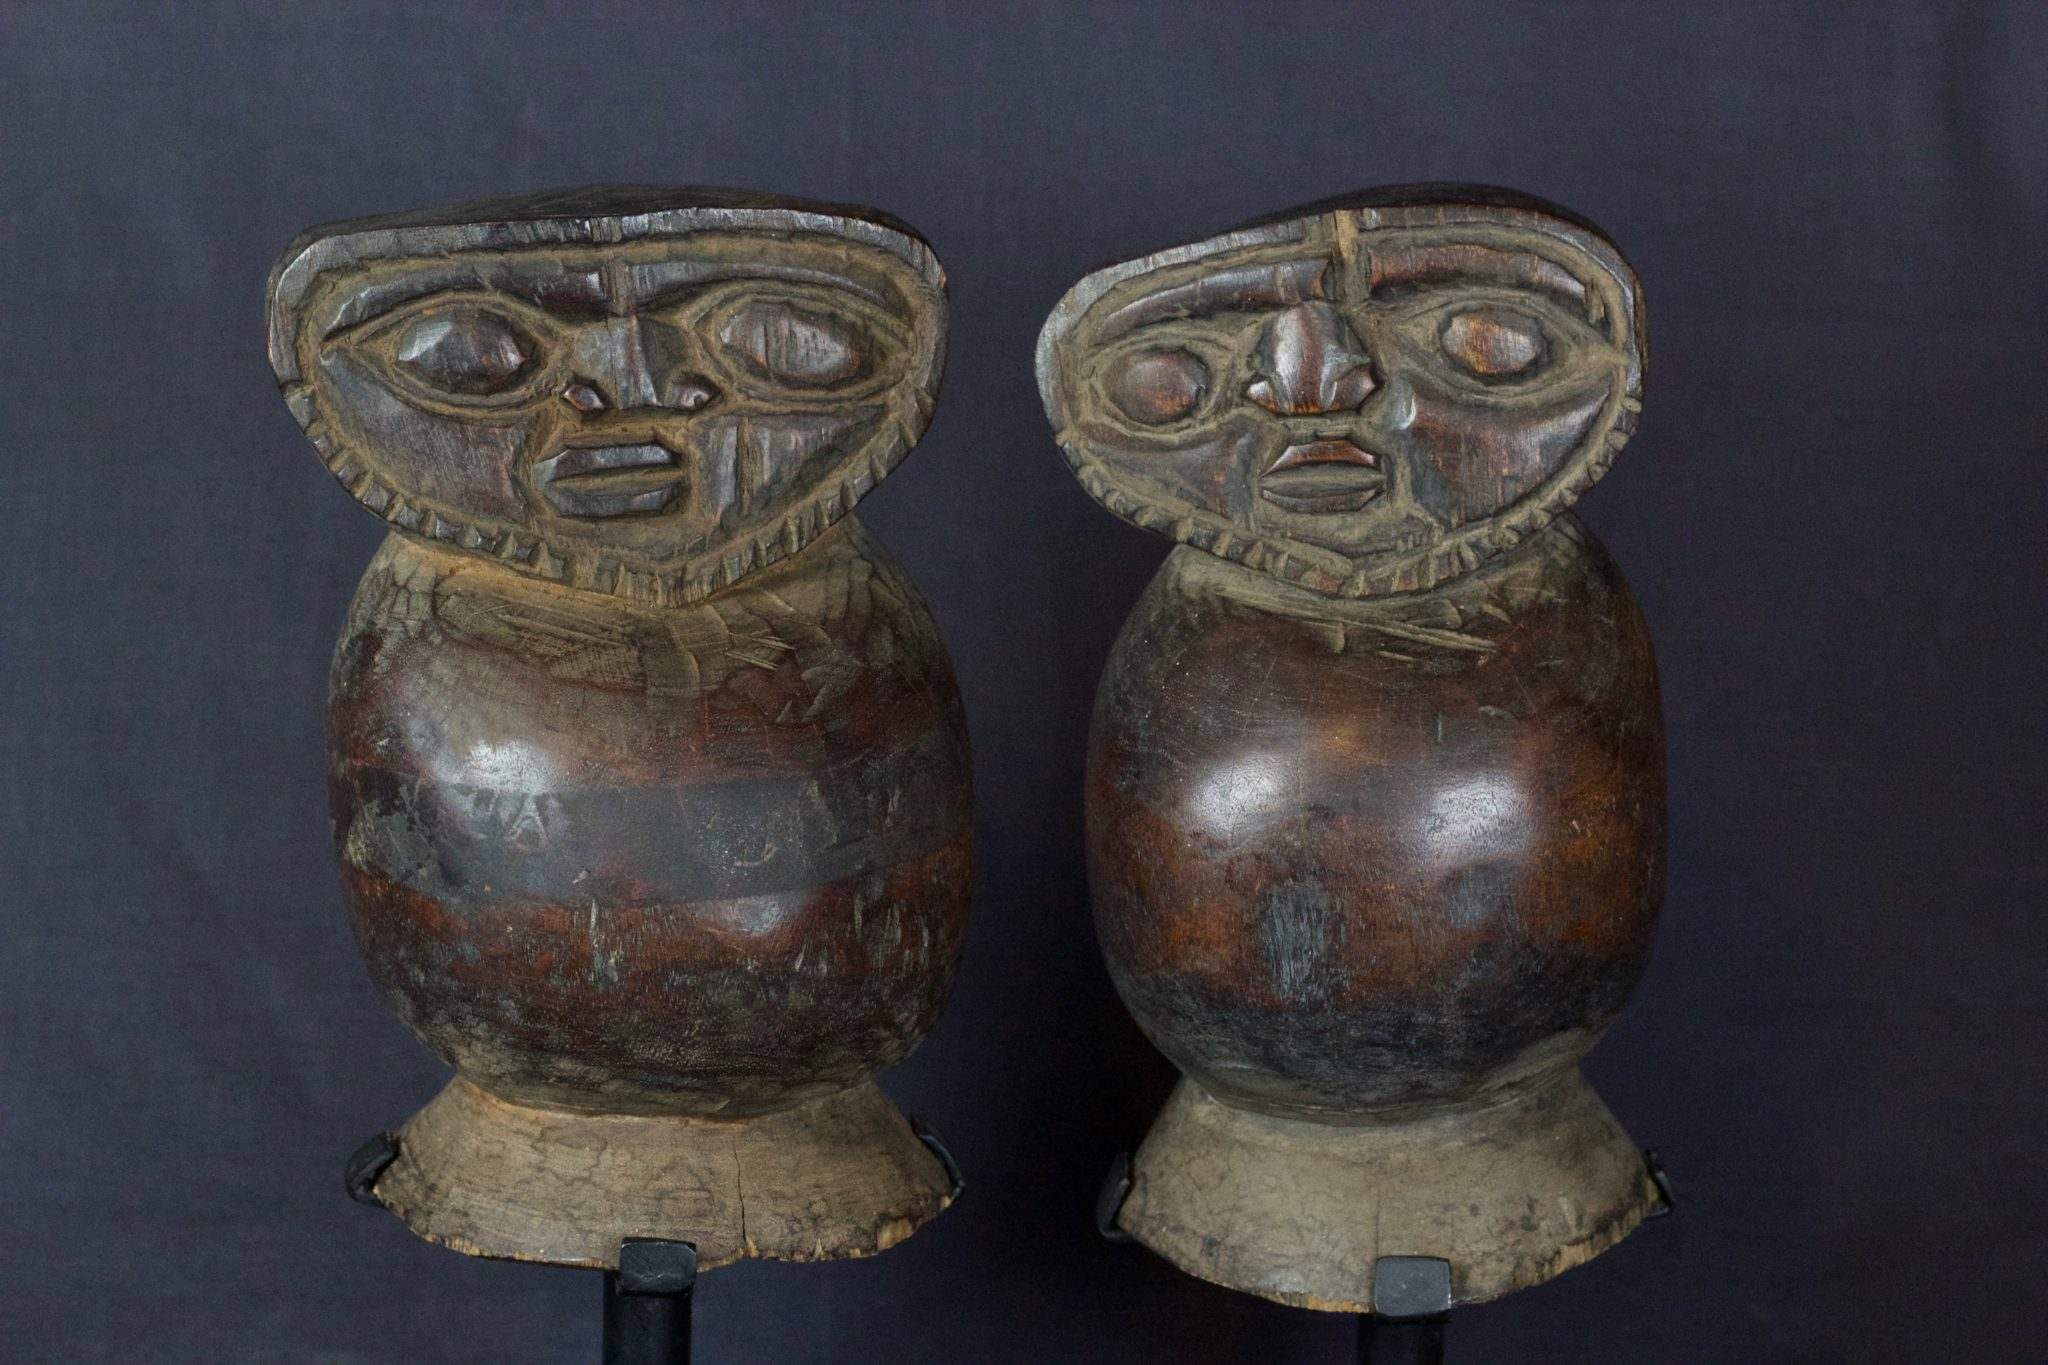 """Magic Ghost Figures, Lombok Island, Lesser Sunda Islands, Indonesia, Early 20th c, Wood, smooth patina from use and age. 8 ½"""" x 5 ¾"""" x 5 ½"""", $790 (sold as pair)"""